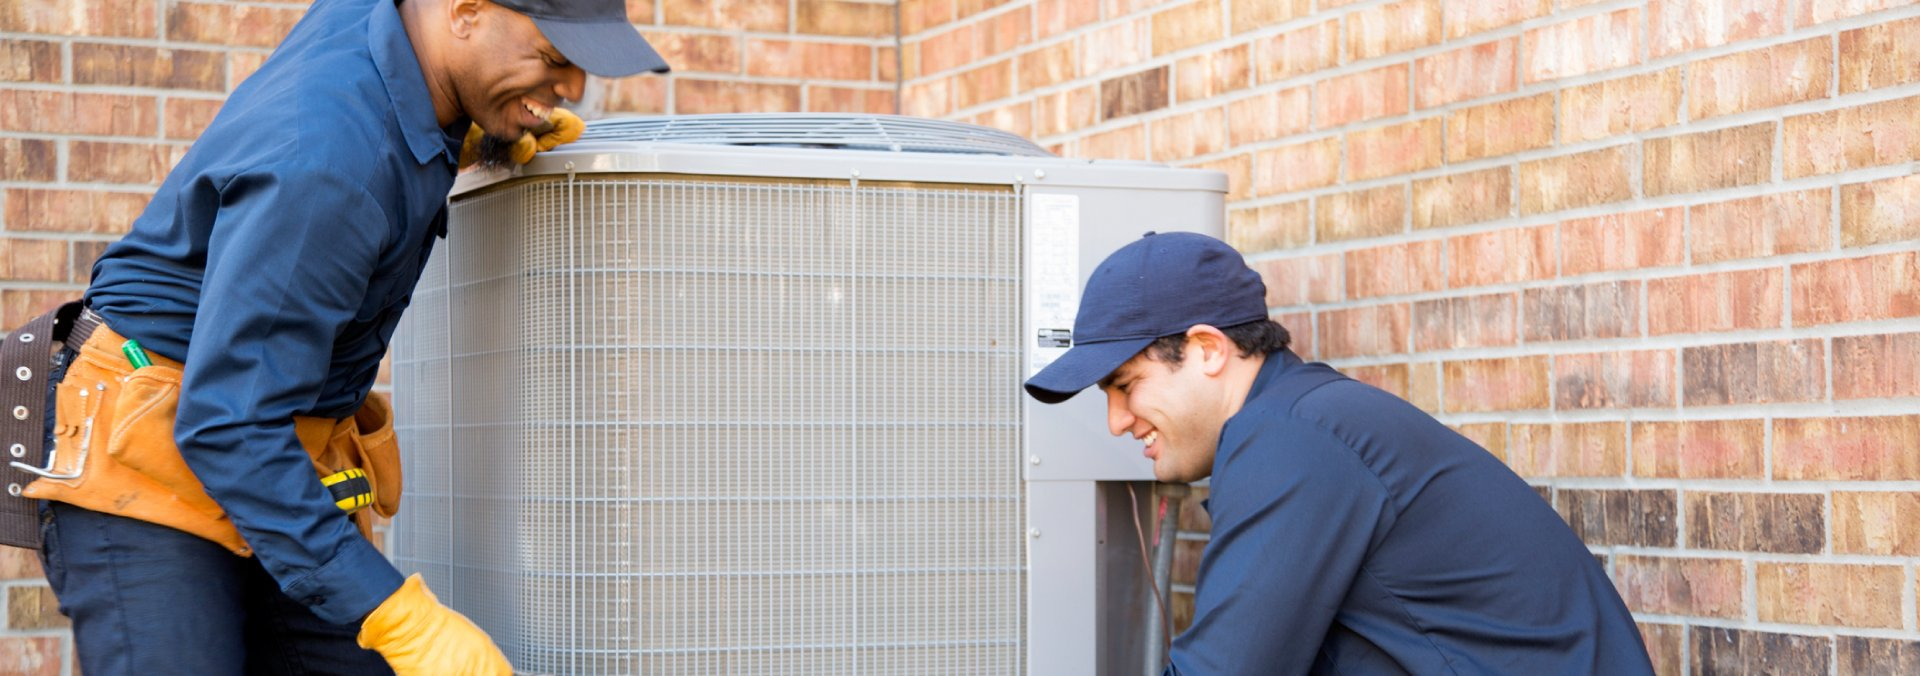 HVAC Techs Working